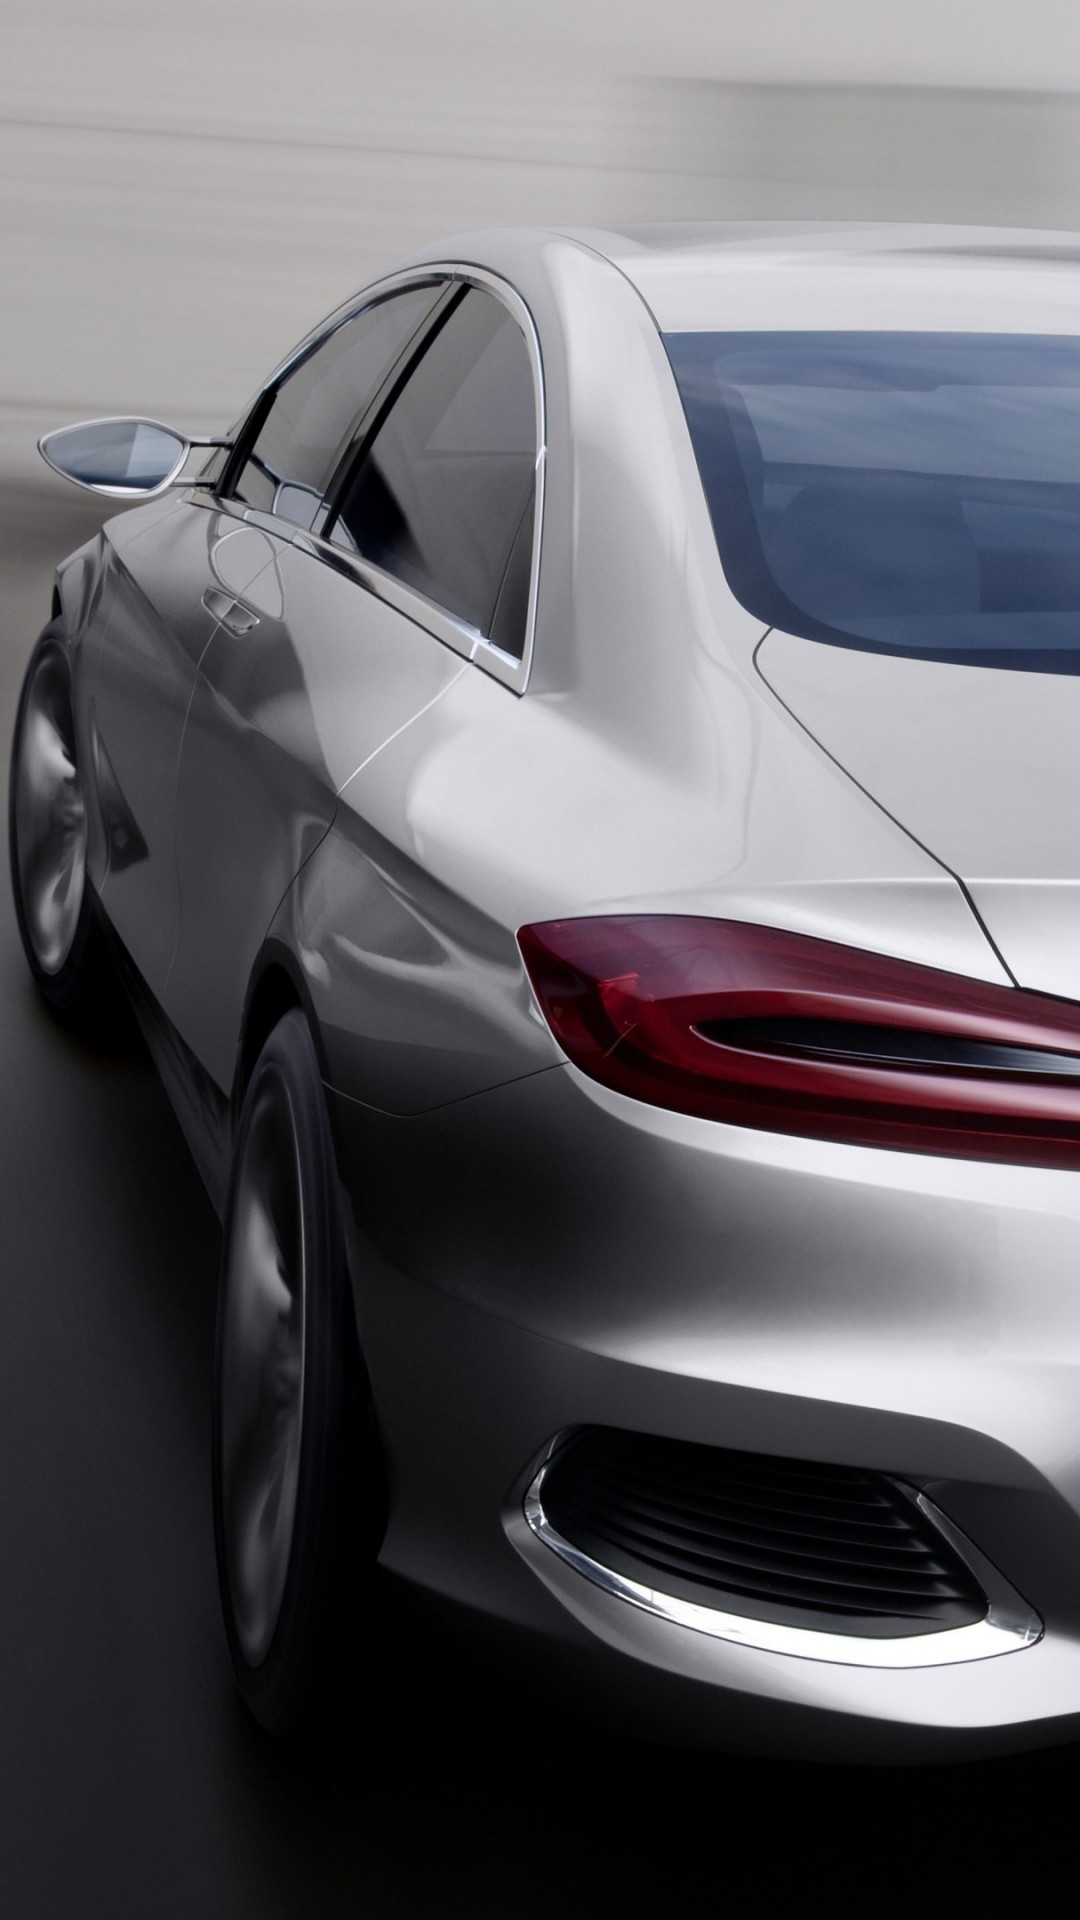 Mercedes Benz F800 Concept Rear View Wallpaper for SAMSUNG Galaxy S4